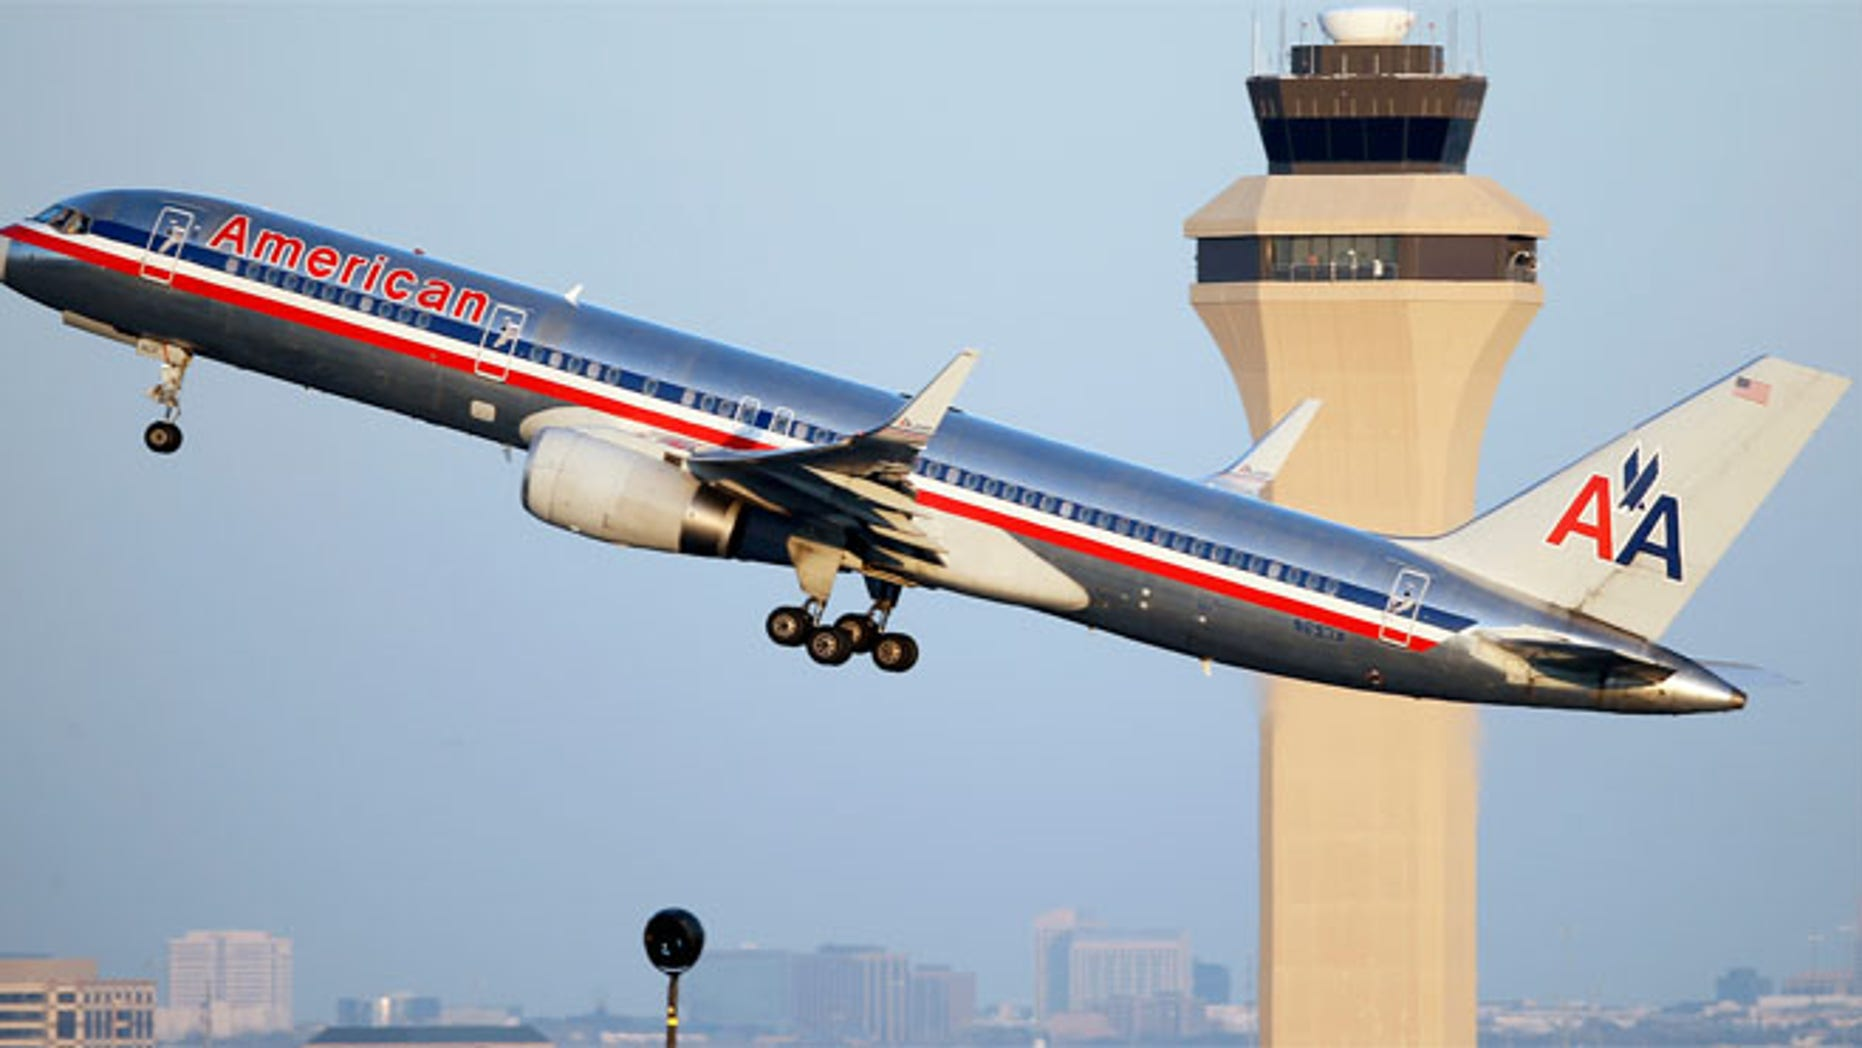 American admitted it sent the wrong plane from LAX to Hawaii.